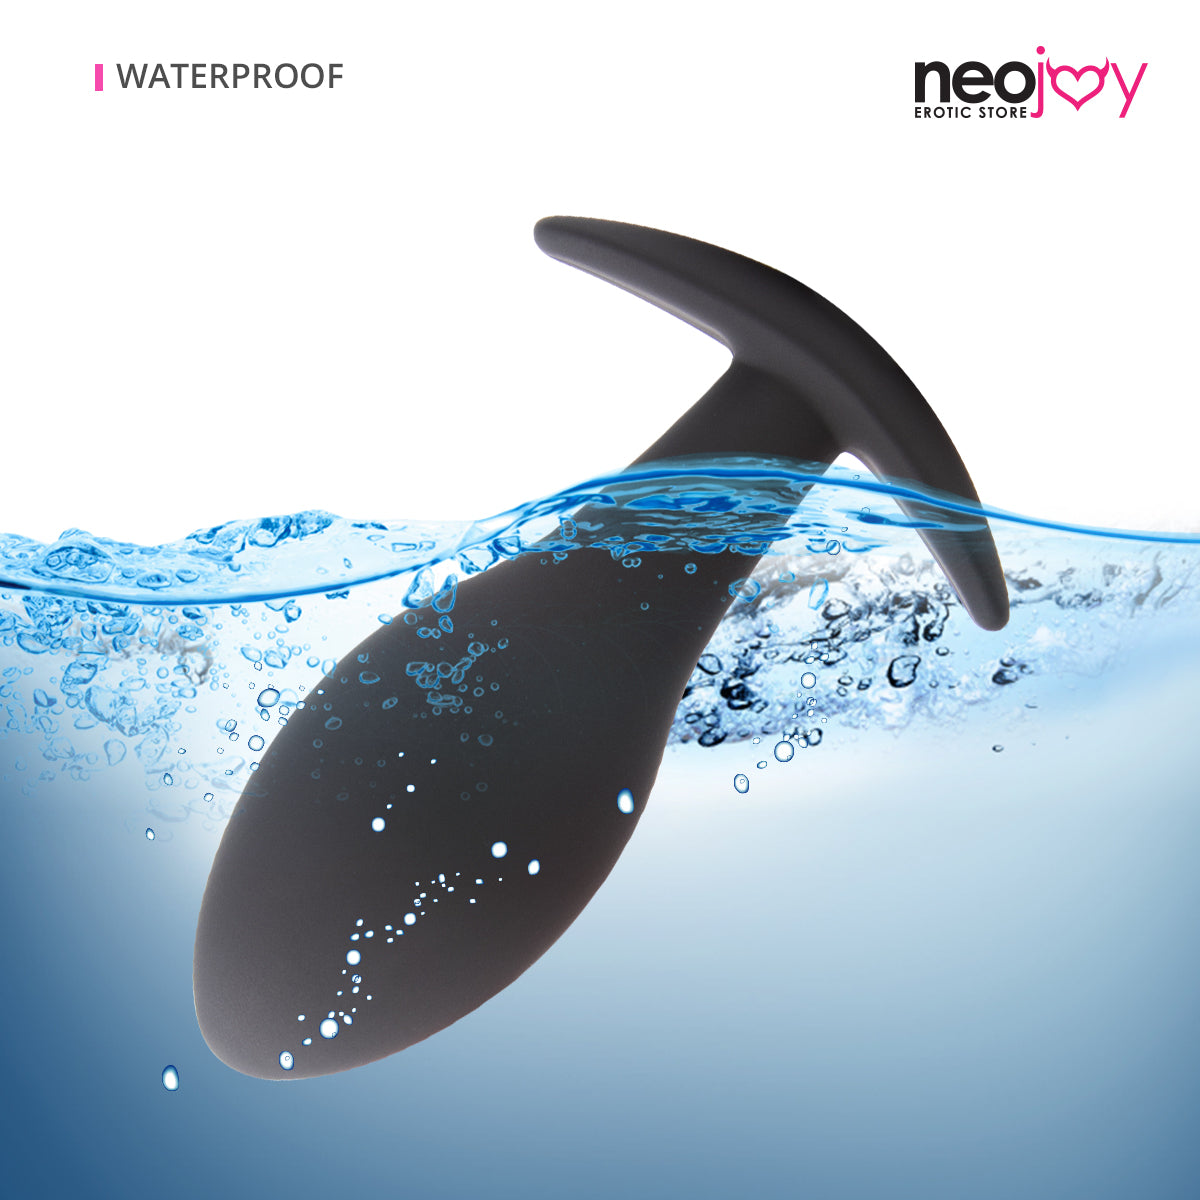 Neojoy Rear-entry Plug - Silicone Hypoallergenic Butt Plug Prostate Massager - P-Spot Anal Stimulation - Adult Sex Toy